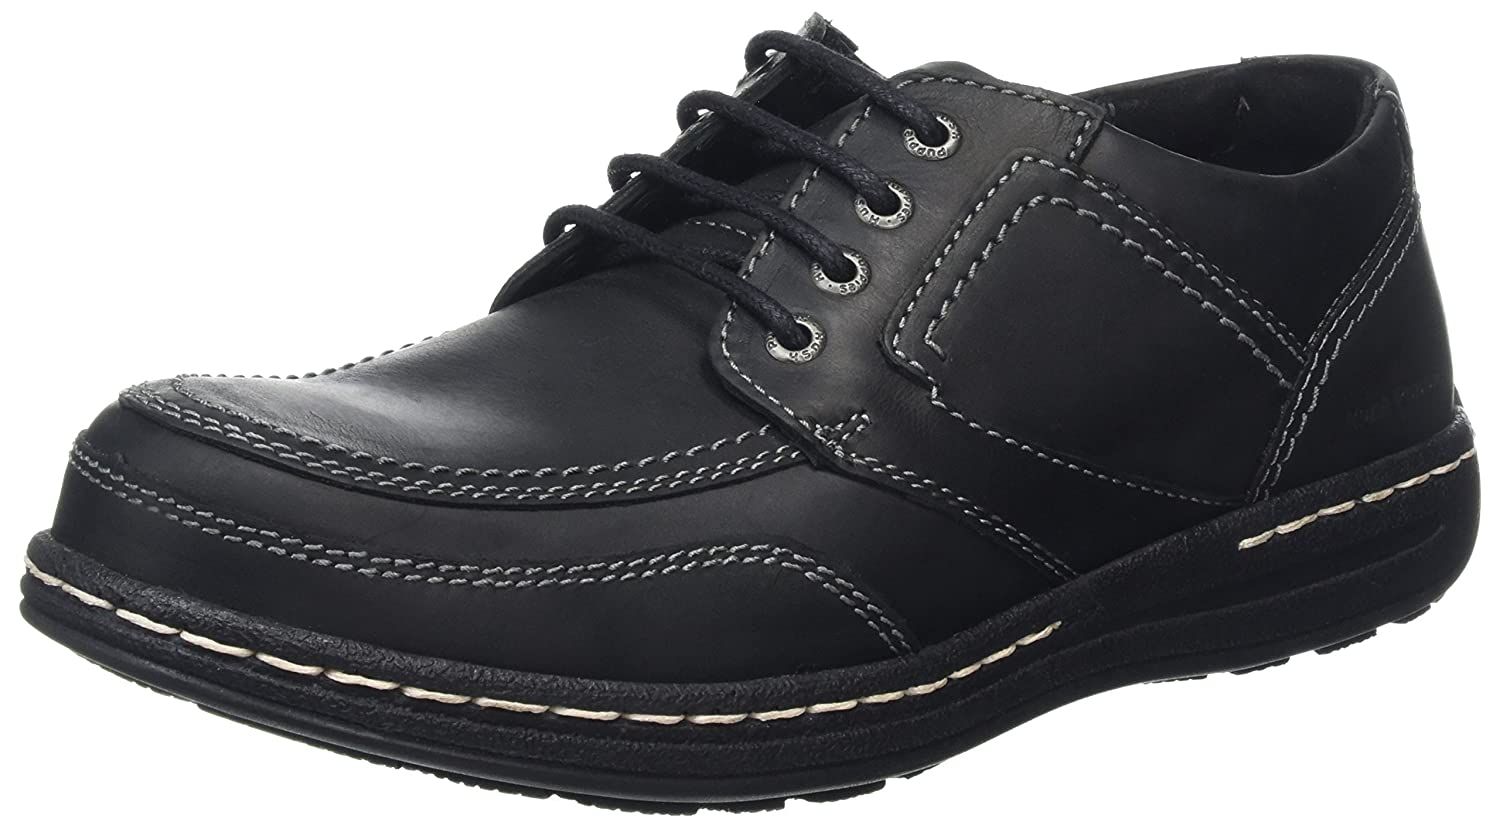 TALLA 41 EU. Hush Puppies Volley Victory, Zapatos de Cordones Derby para Hombre